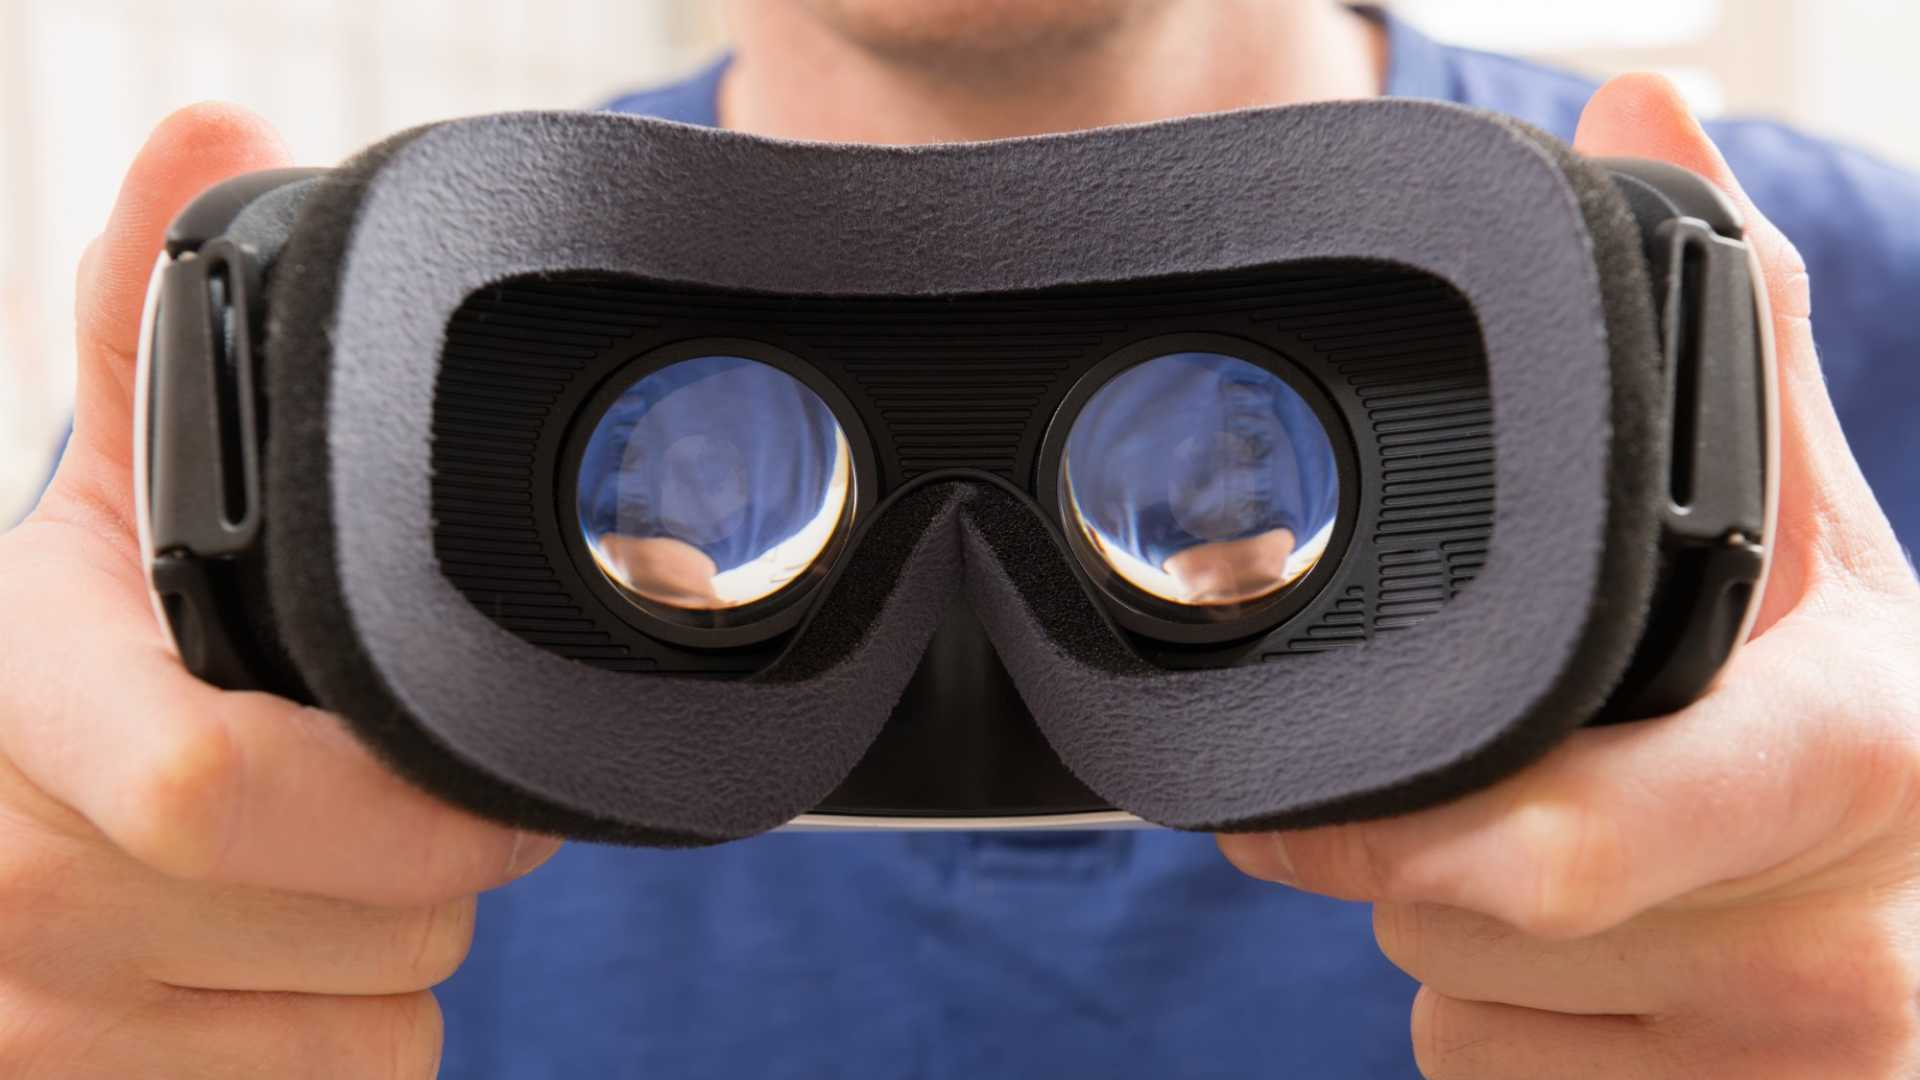 Market researchers are using VR to understand consumer desires and behavior.